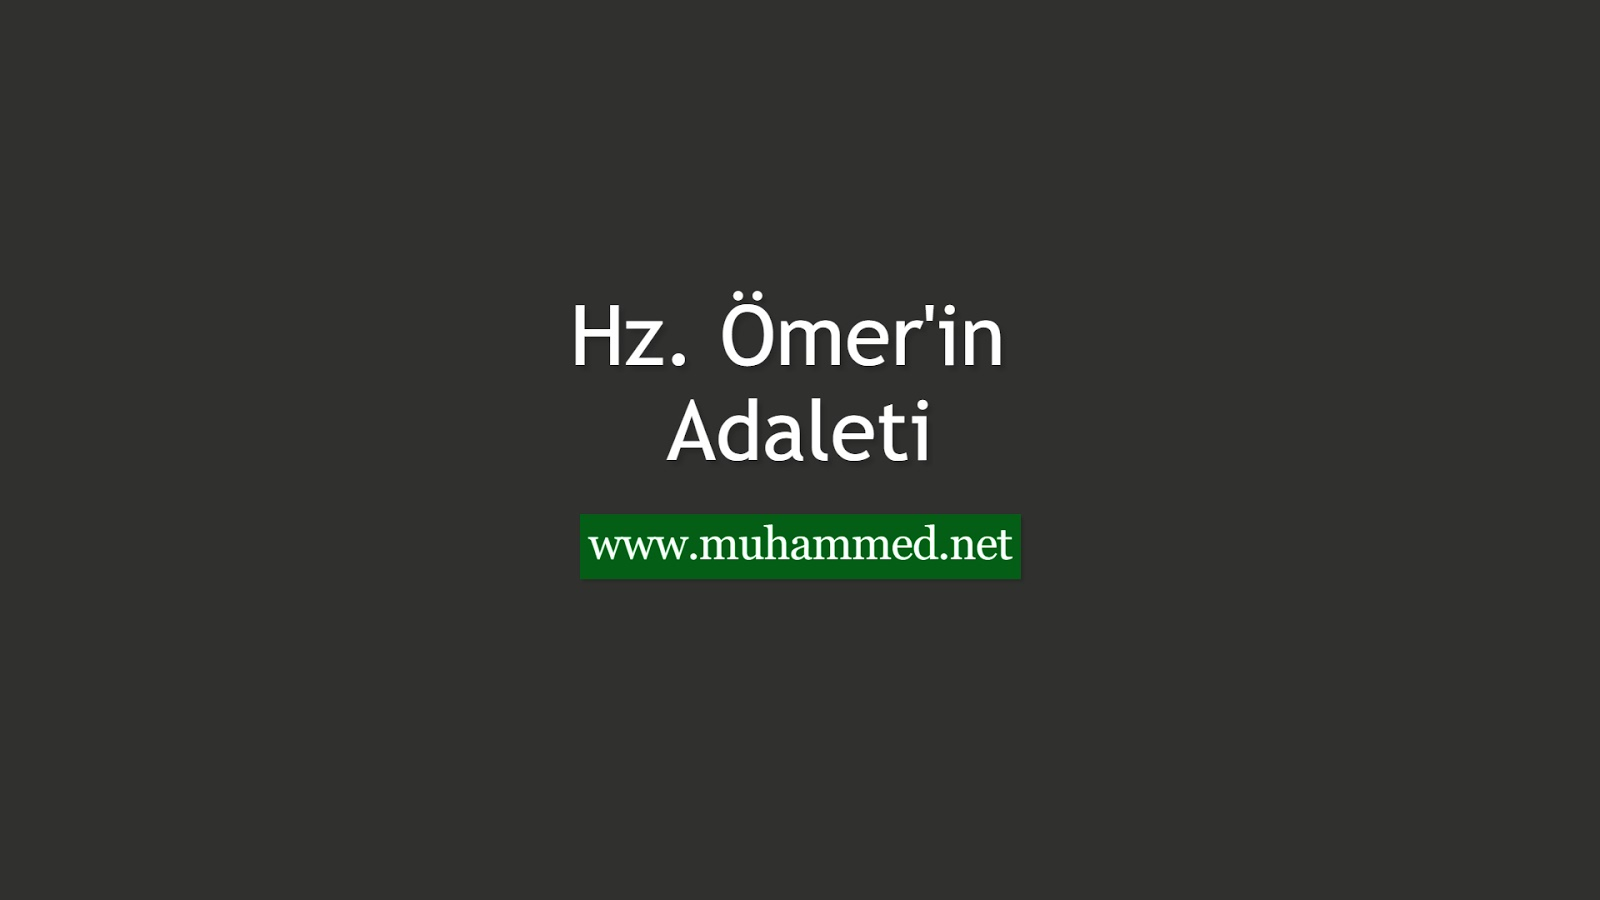 Hz. Ömer'in Adaleti